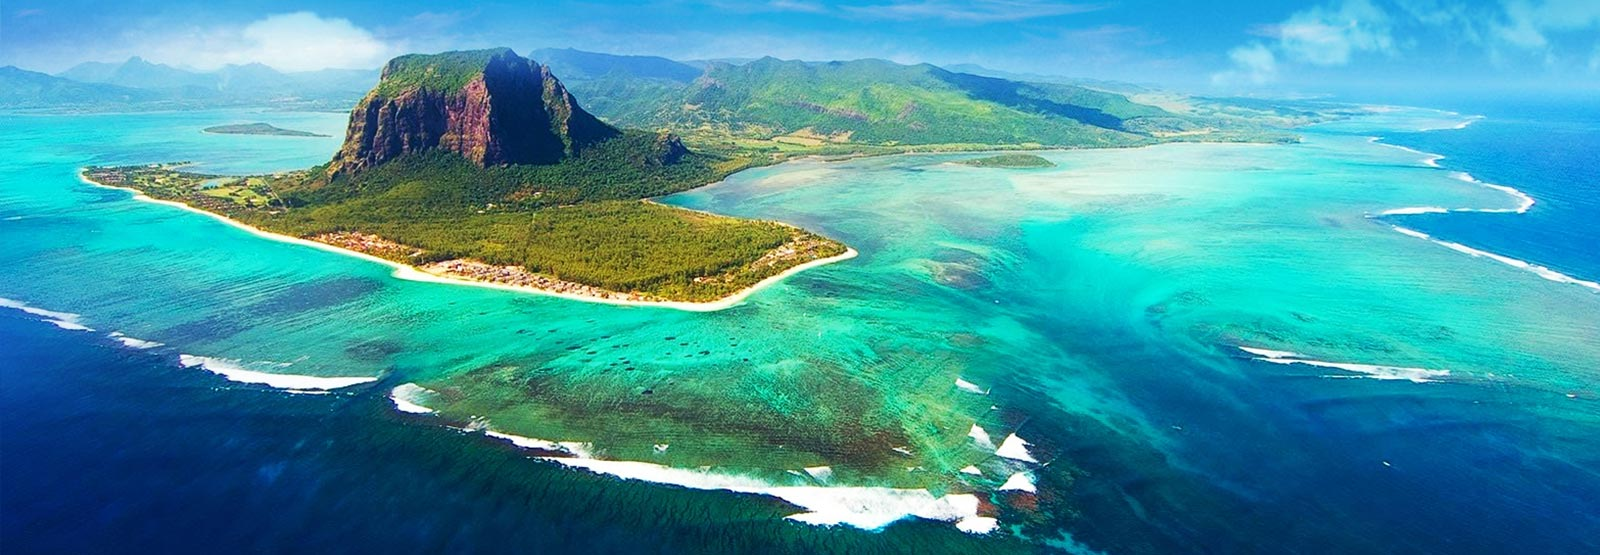 Best-Indian-Ocean-Destinations-Mauritius